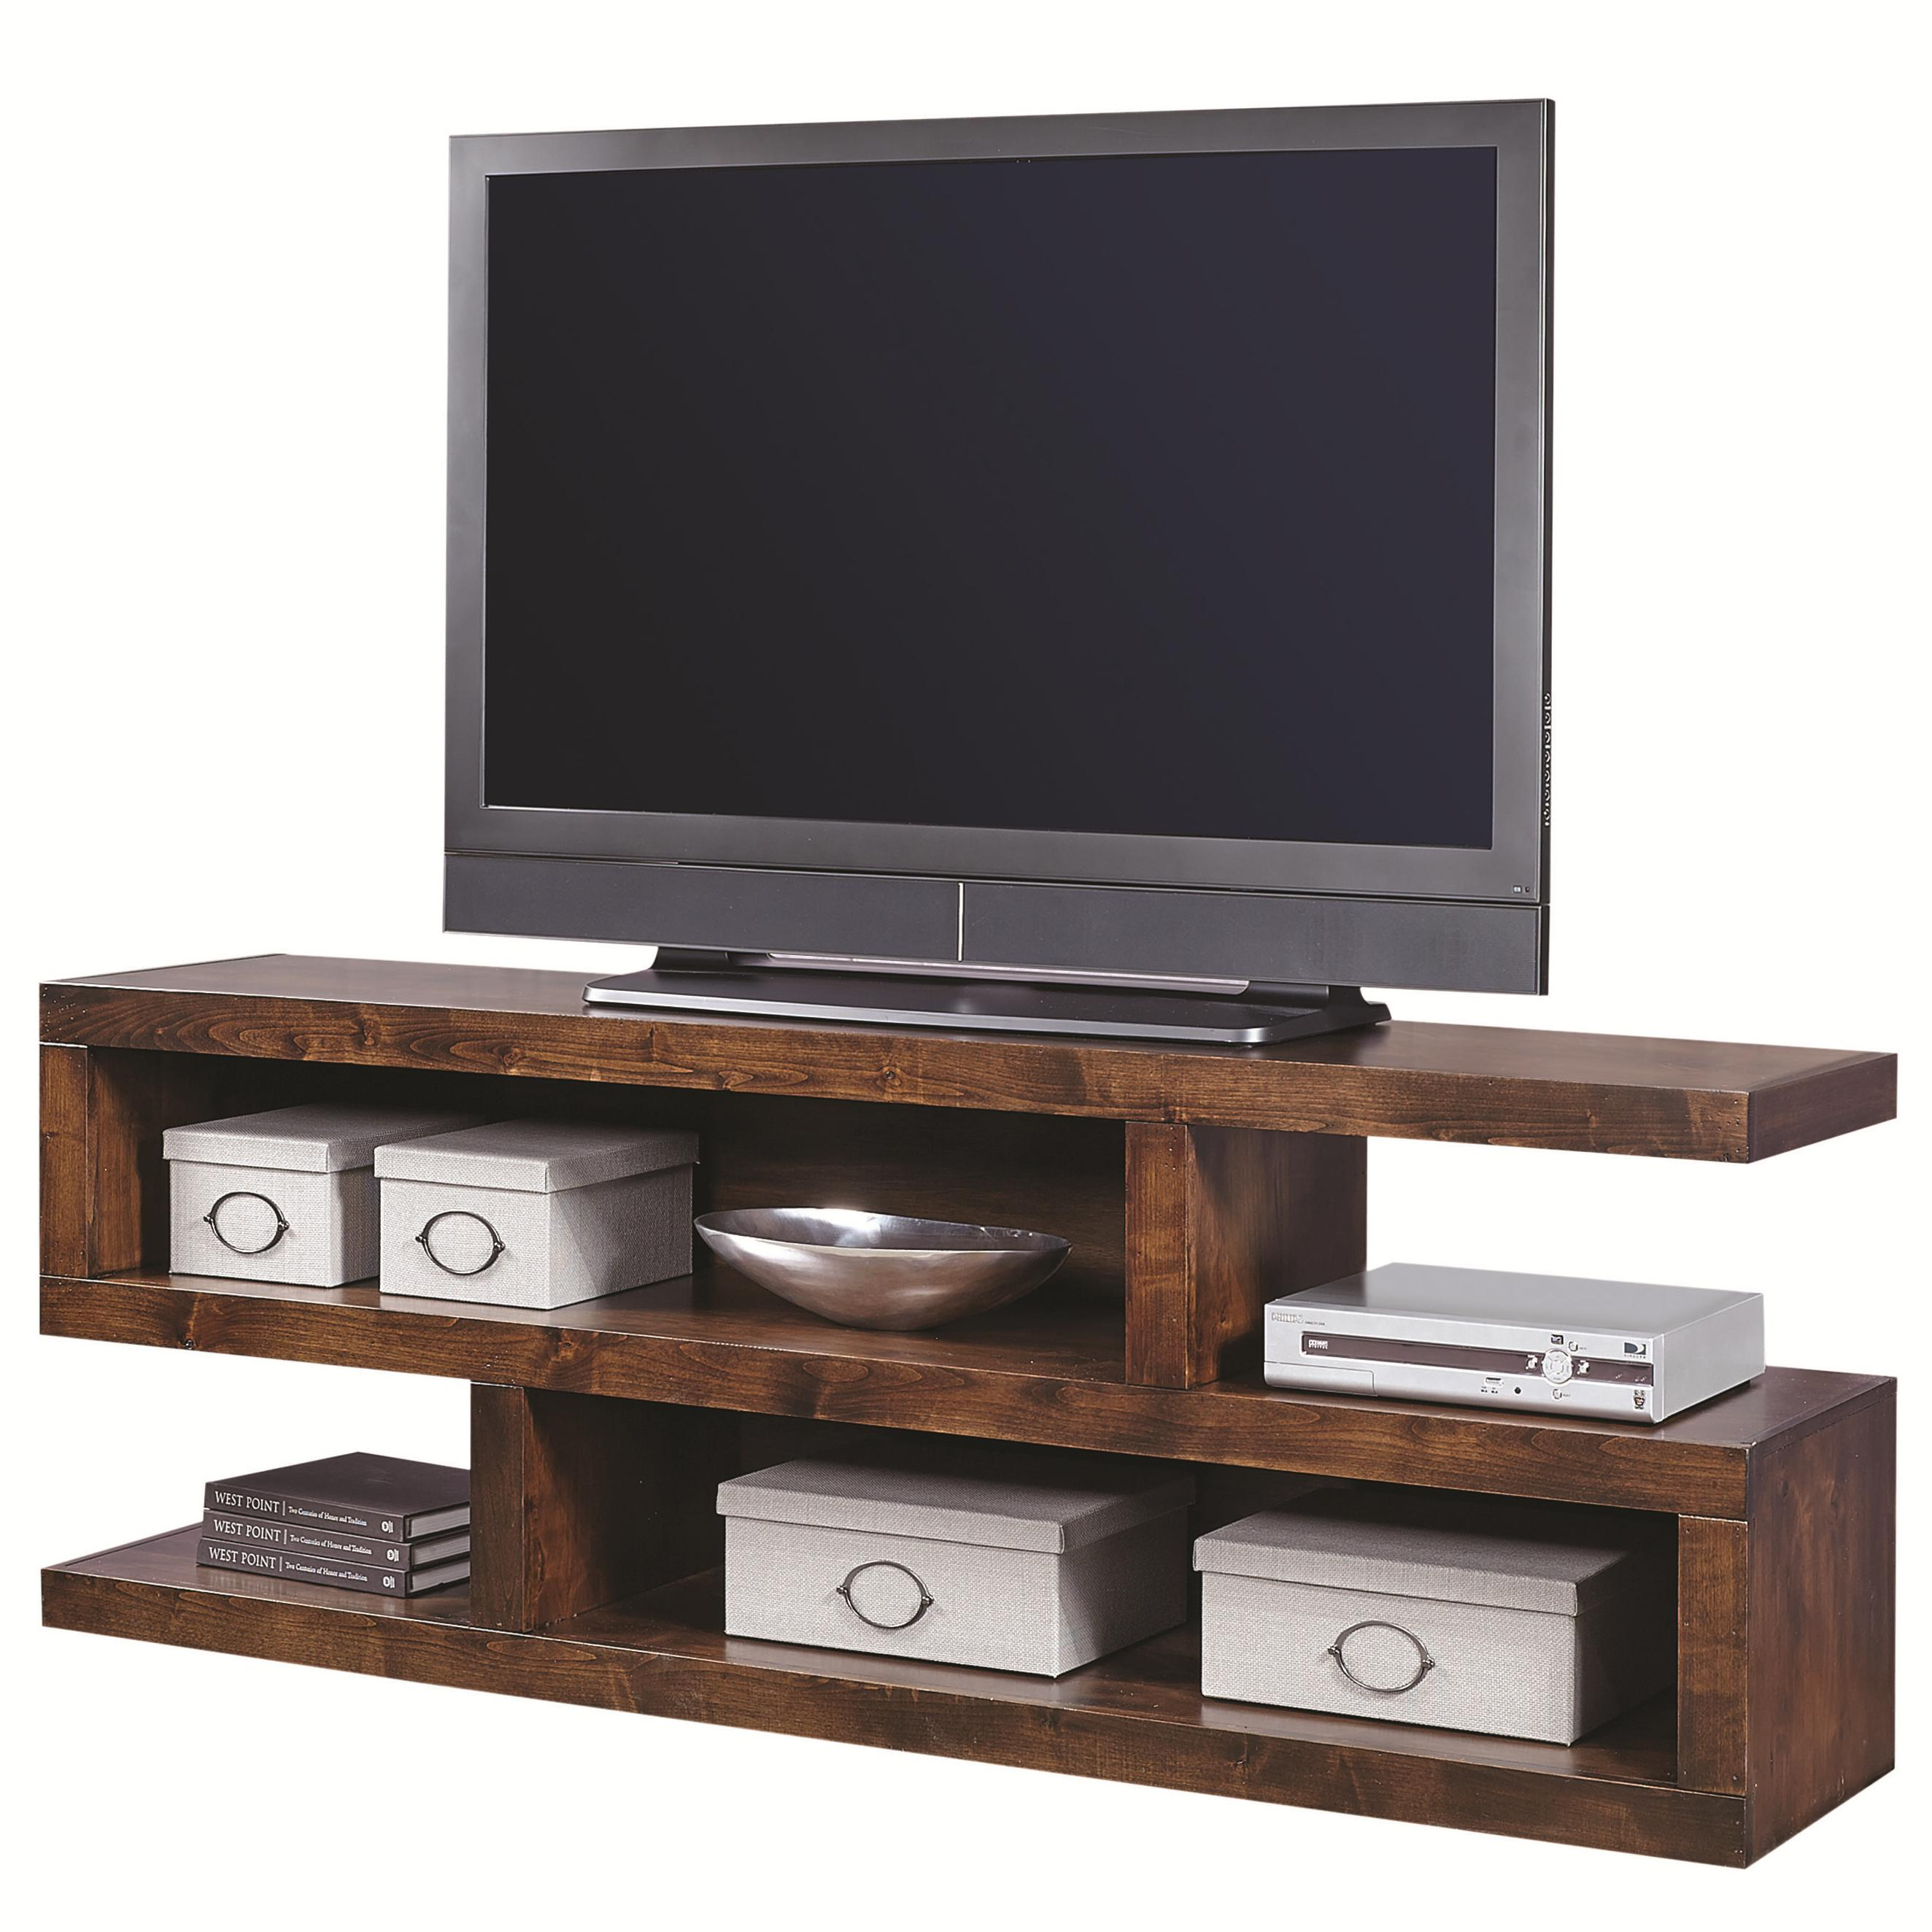 Contemporary Alder 74 Inch Open Console by Aspenhome at Rooms for Less